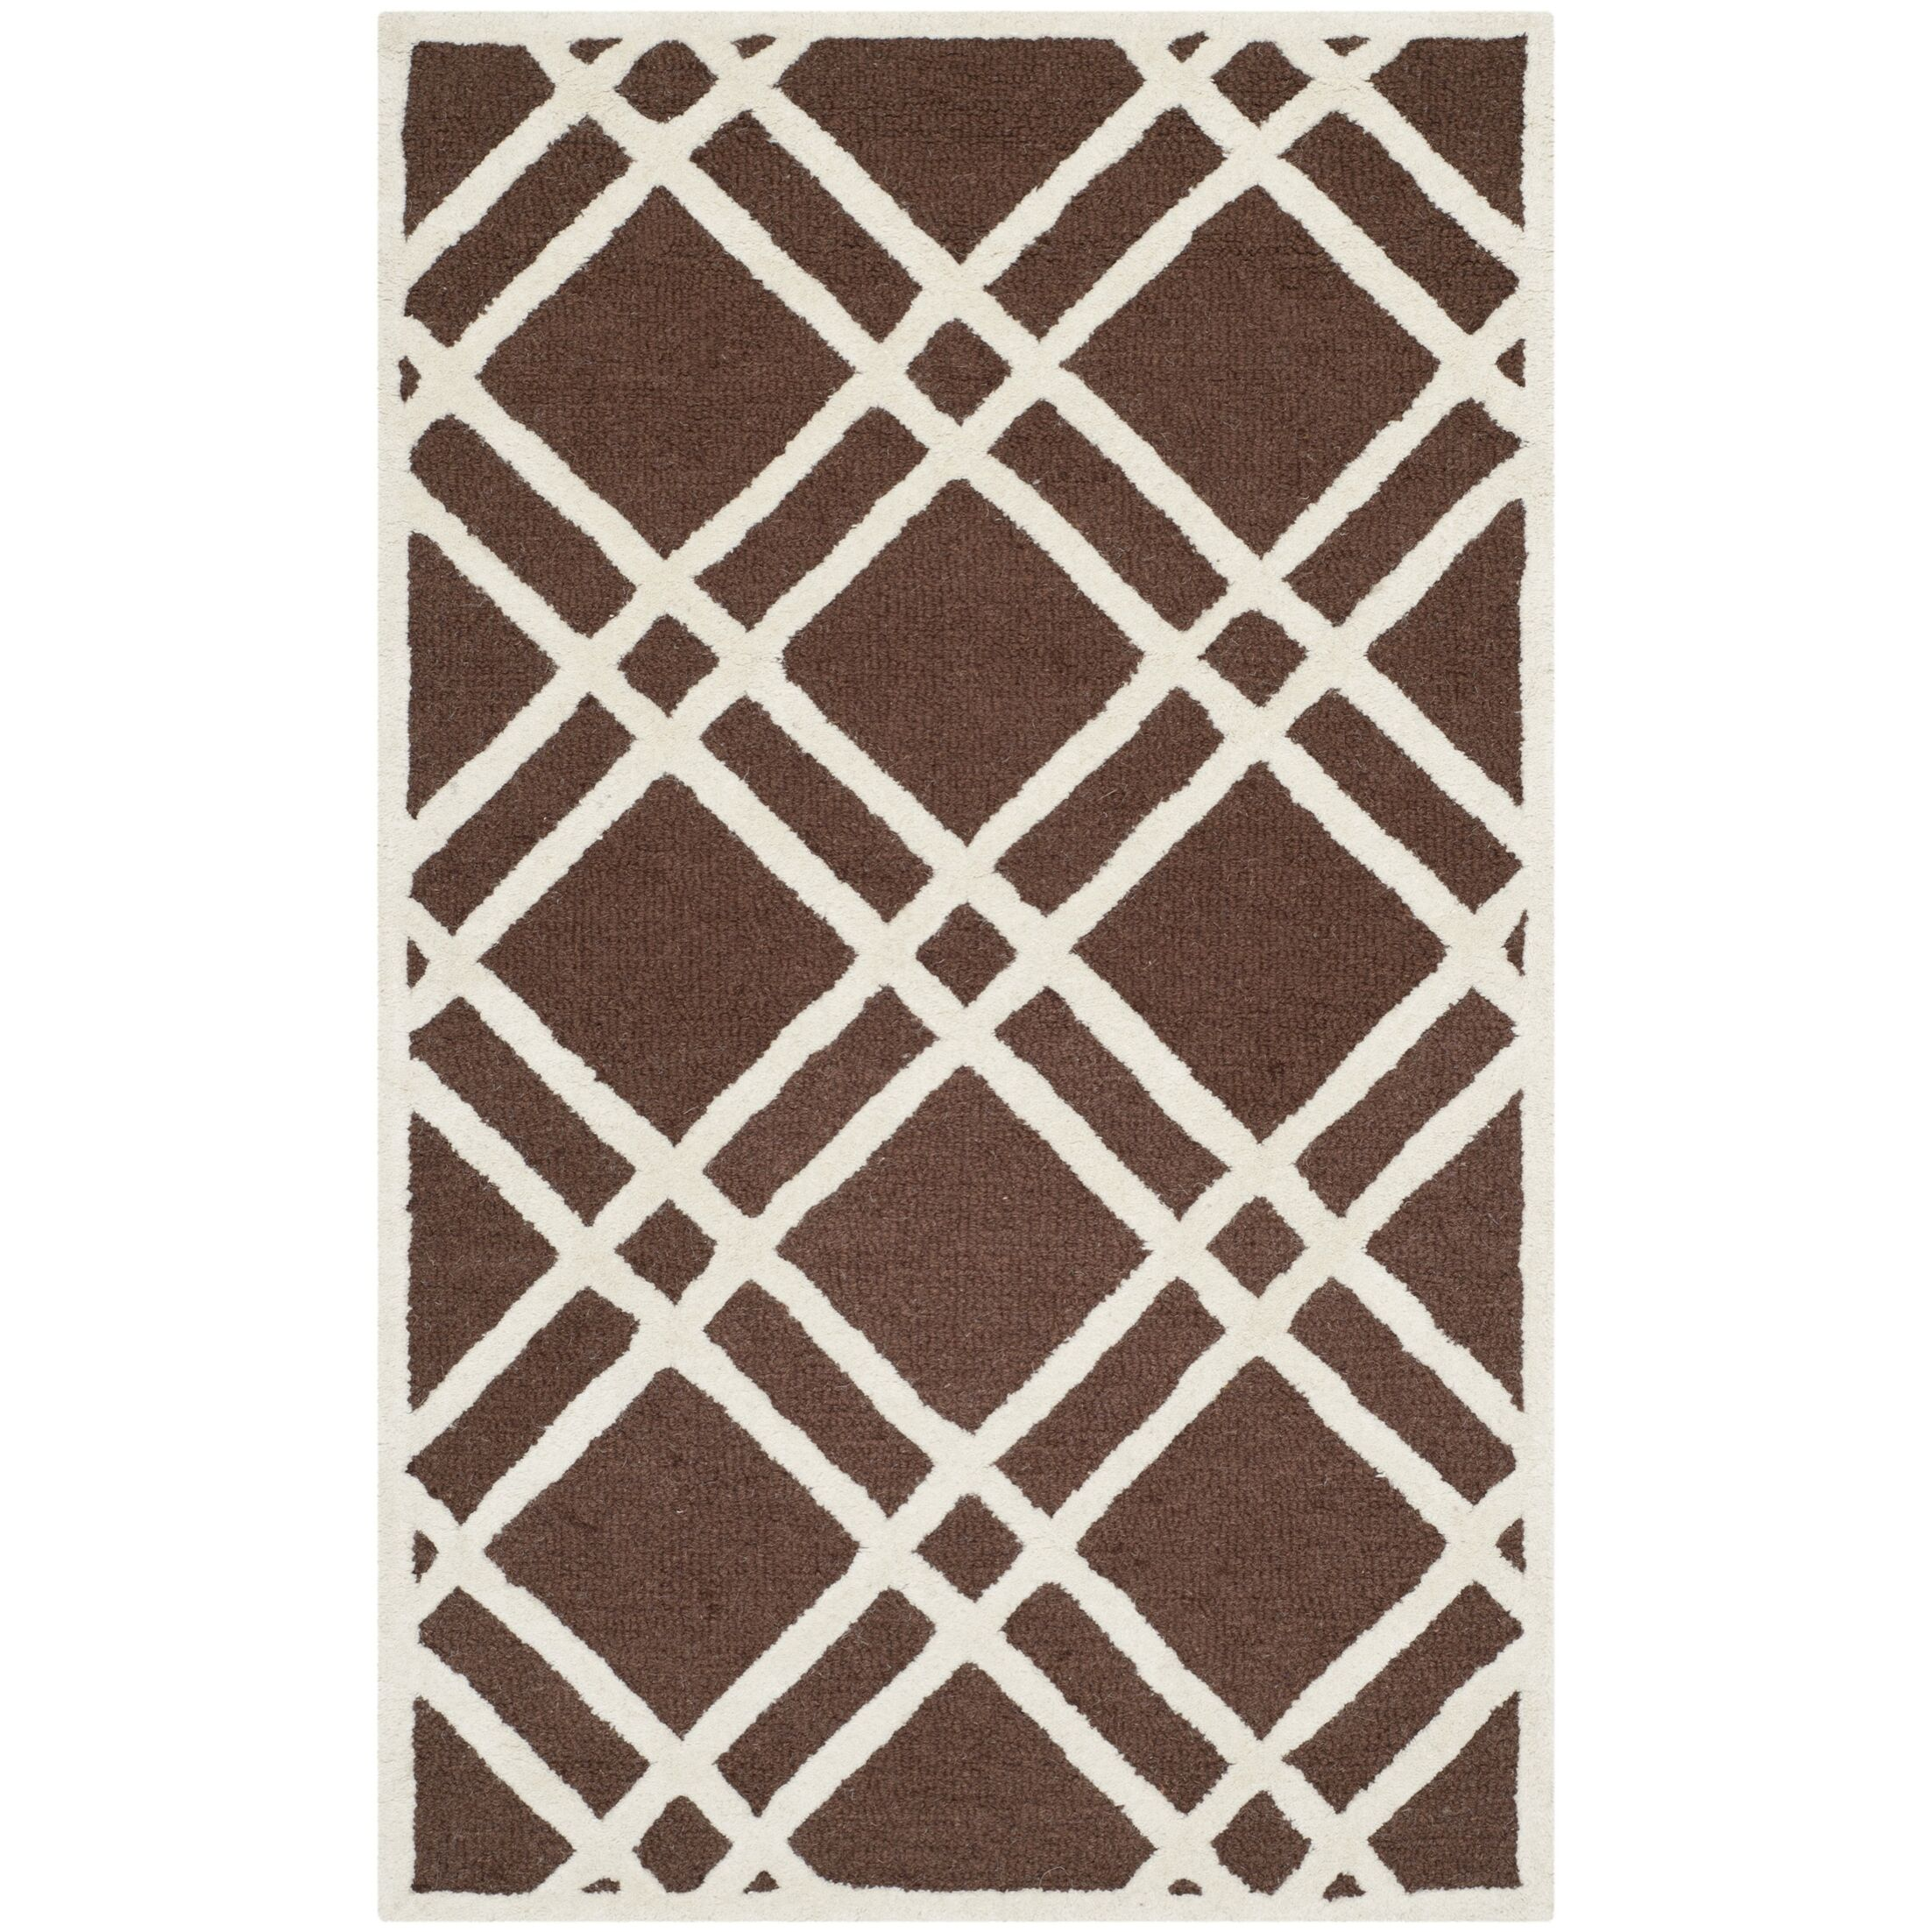 Martins Dark Brown Area Rug Rug Size: Rectangle 8' x 10'